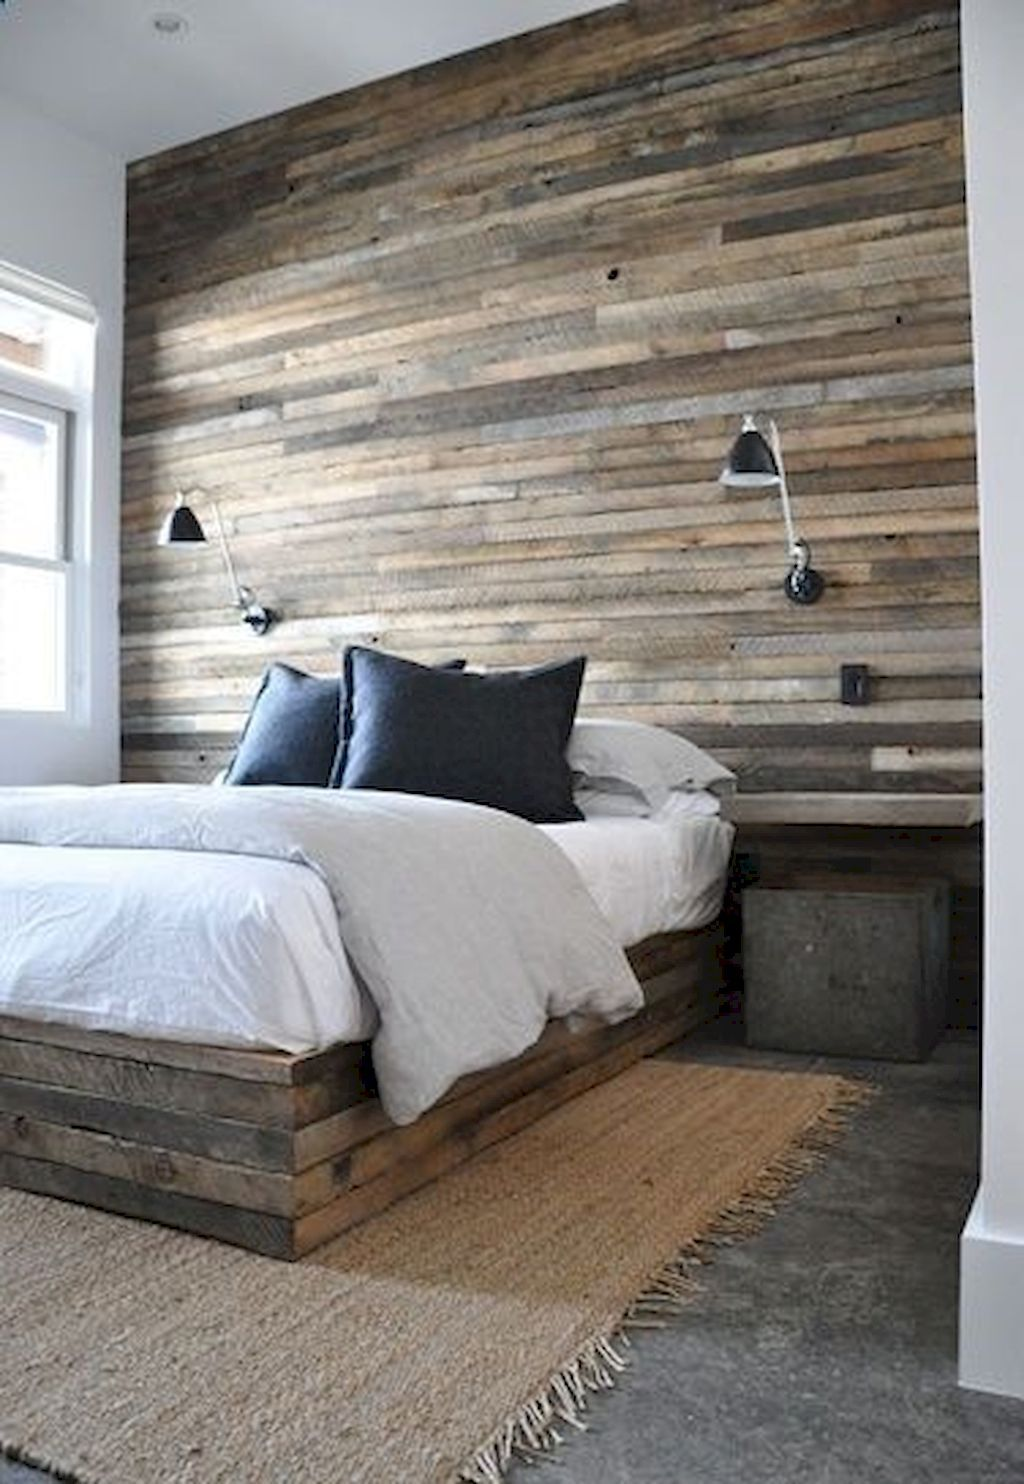 Reclaimed Wood Bedroom Furniture Ideas Wood wall, Wood paneling walls and Hallway ideas. Cool 50 Rustic Master Bedroom  Decor ...